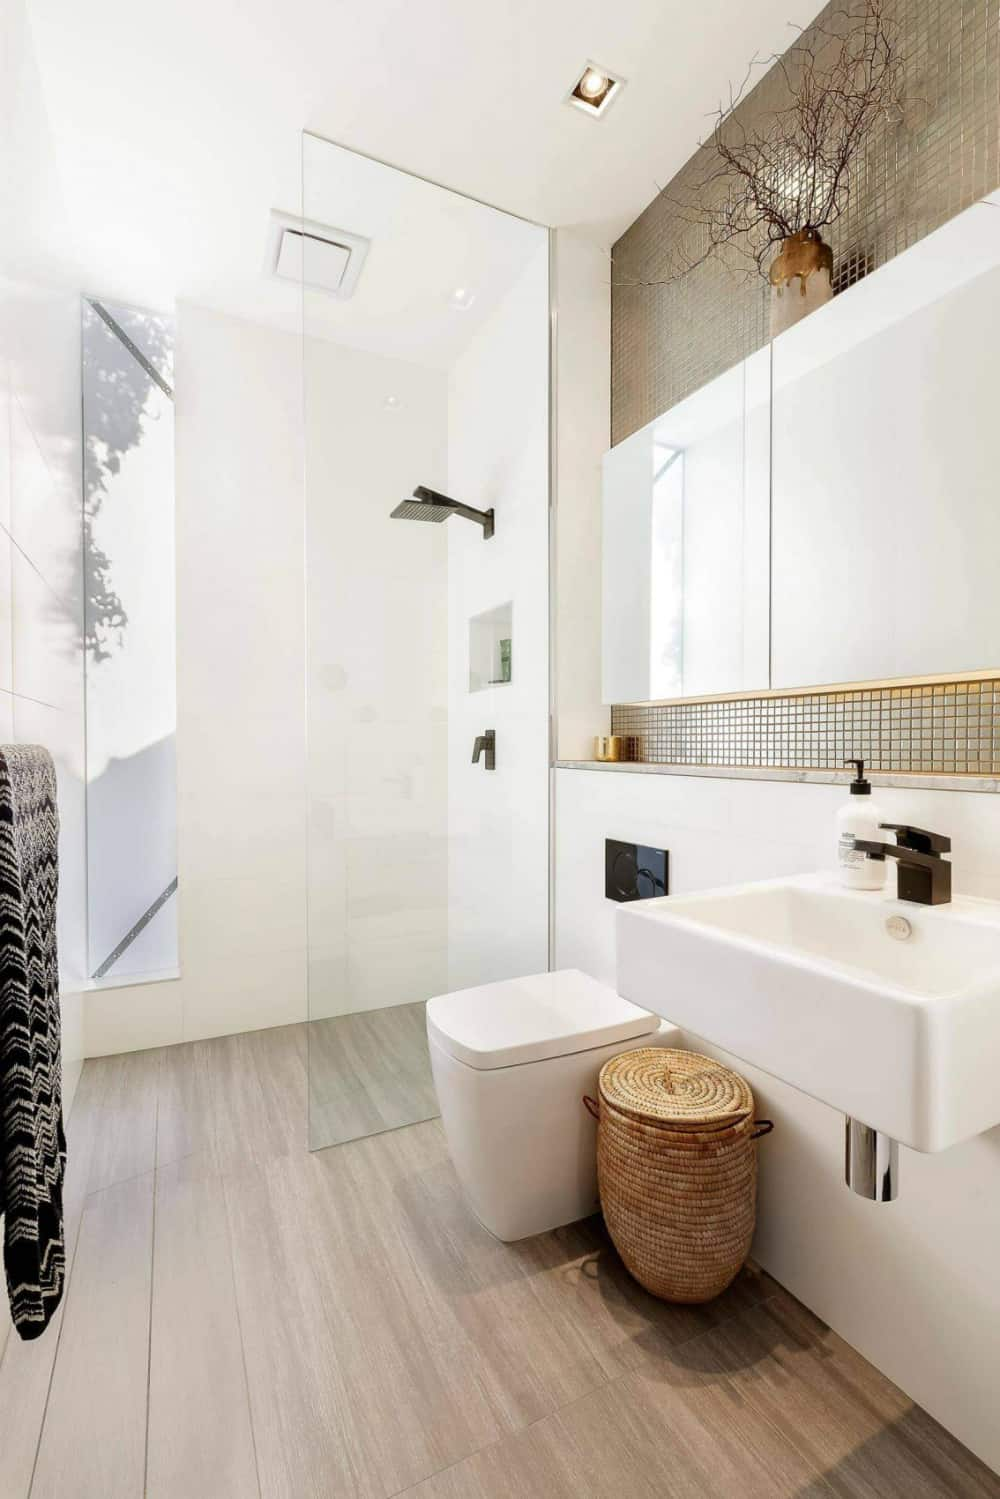 The shower features a glazed inclusion that opens up the space to outdoors